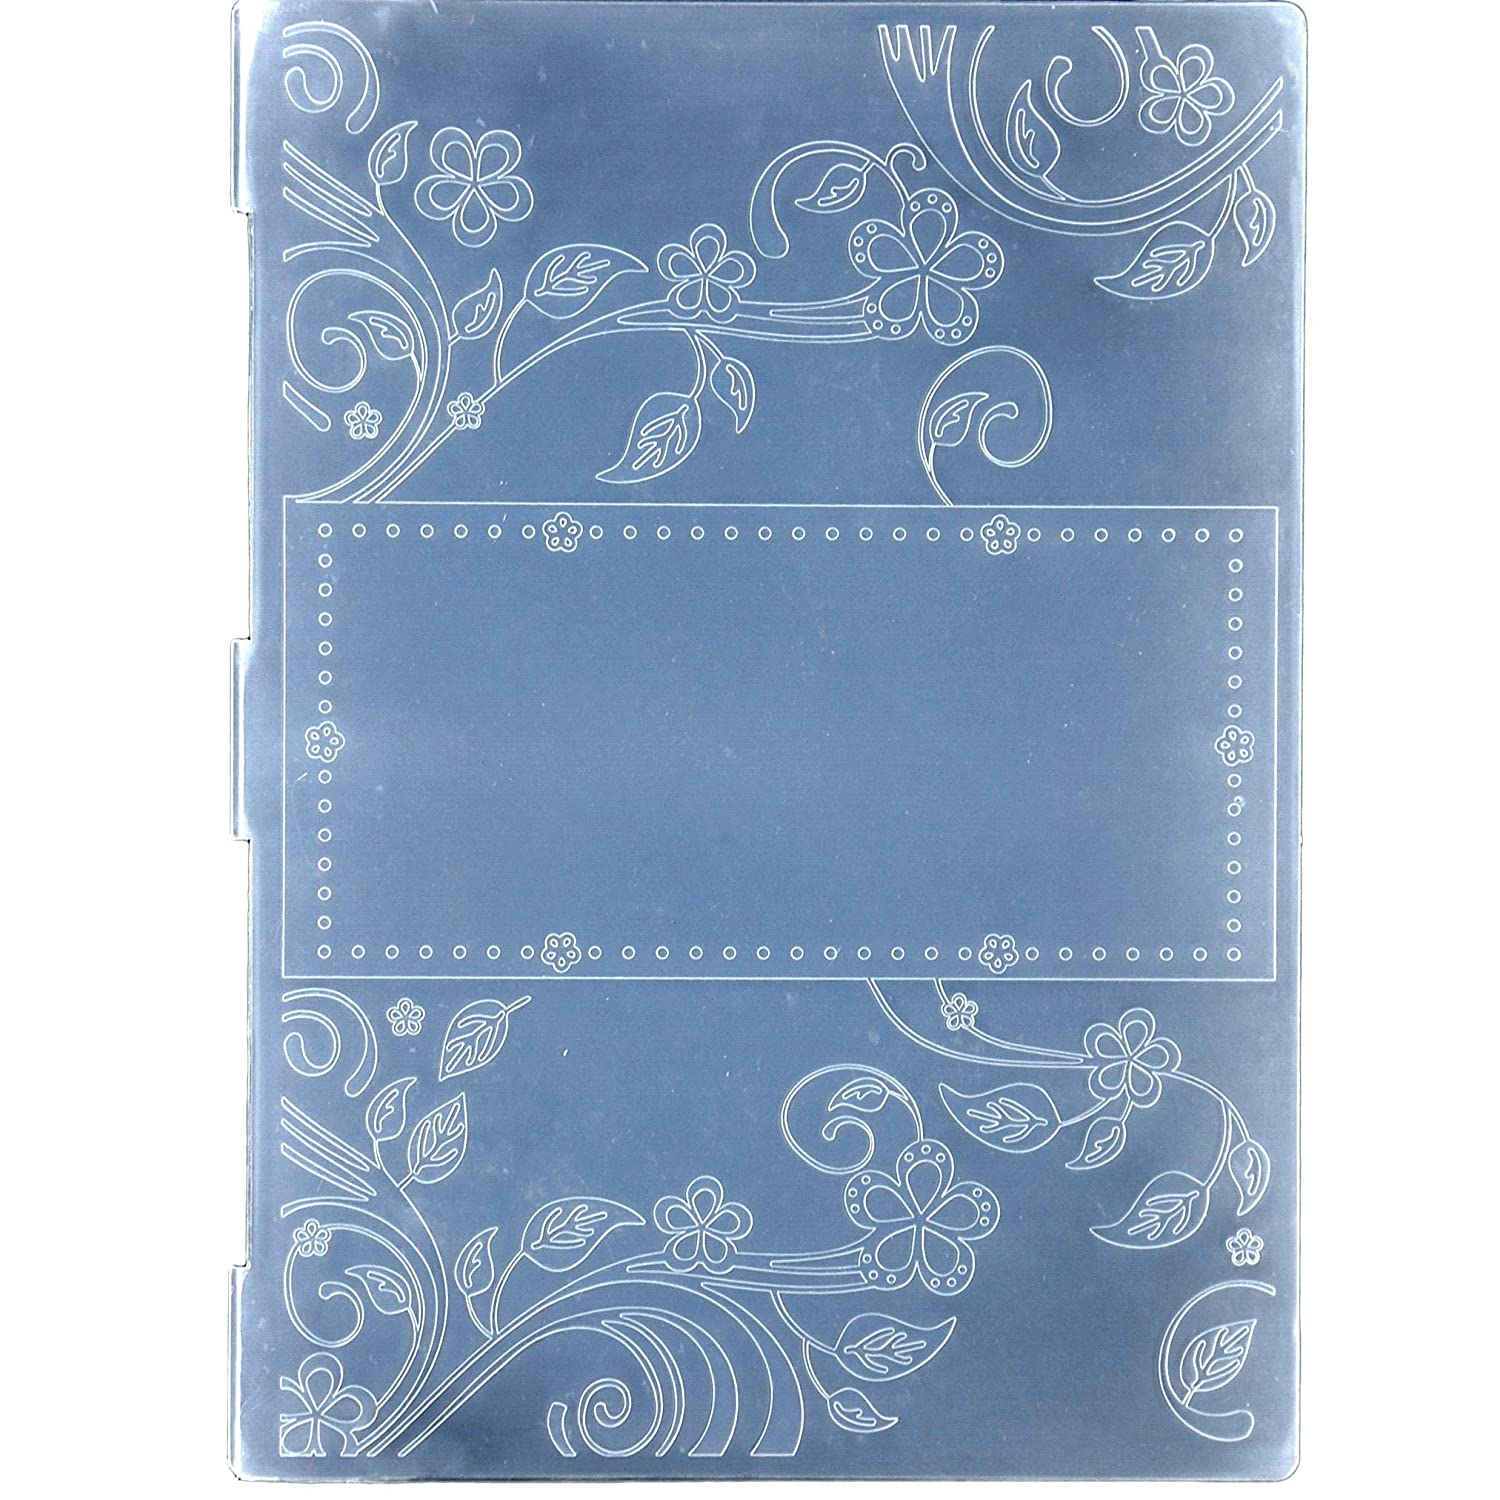 Kwan Crafts A4 Size Leaves Flowers Frame Plastic Embossing Folders for Card Making Scrapbooking and Other Paper Crafts 29.7x21cm